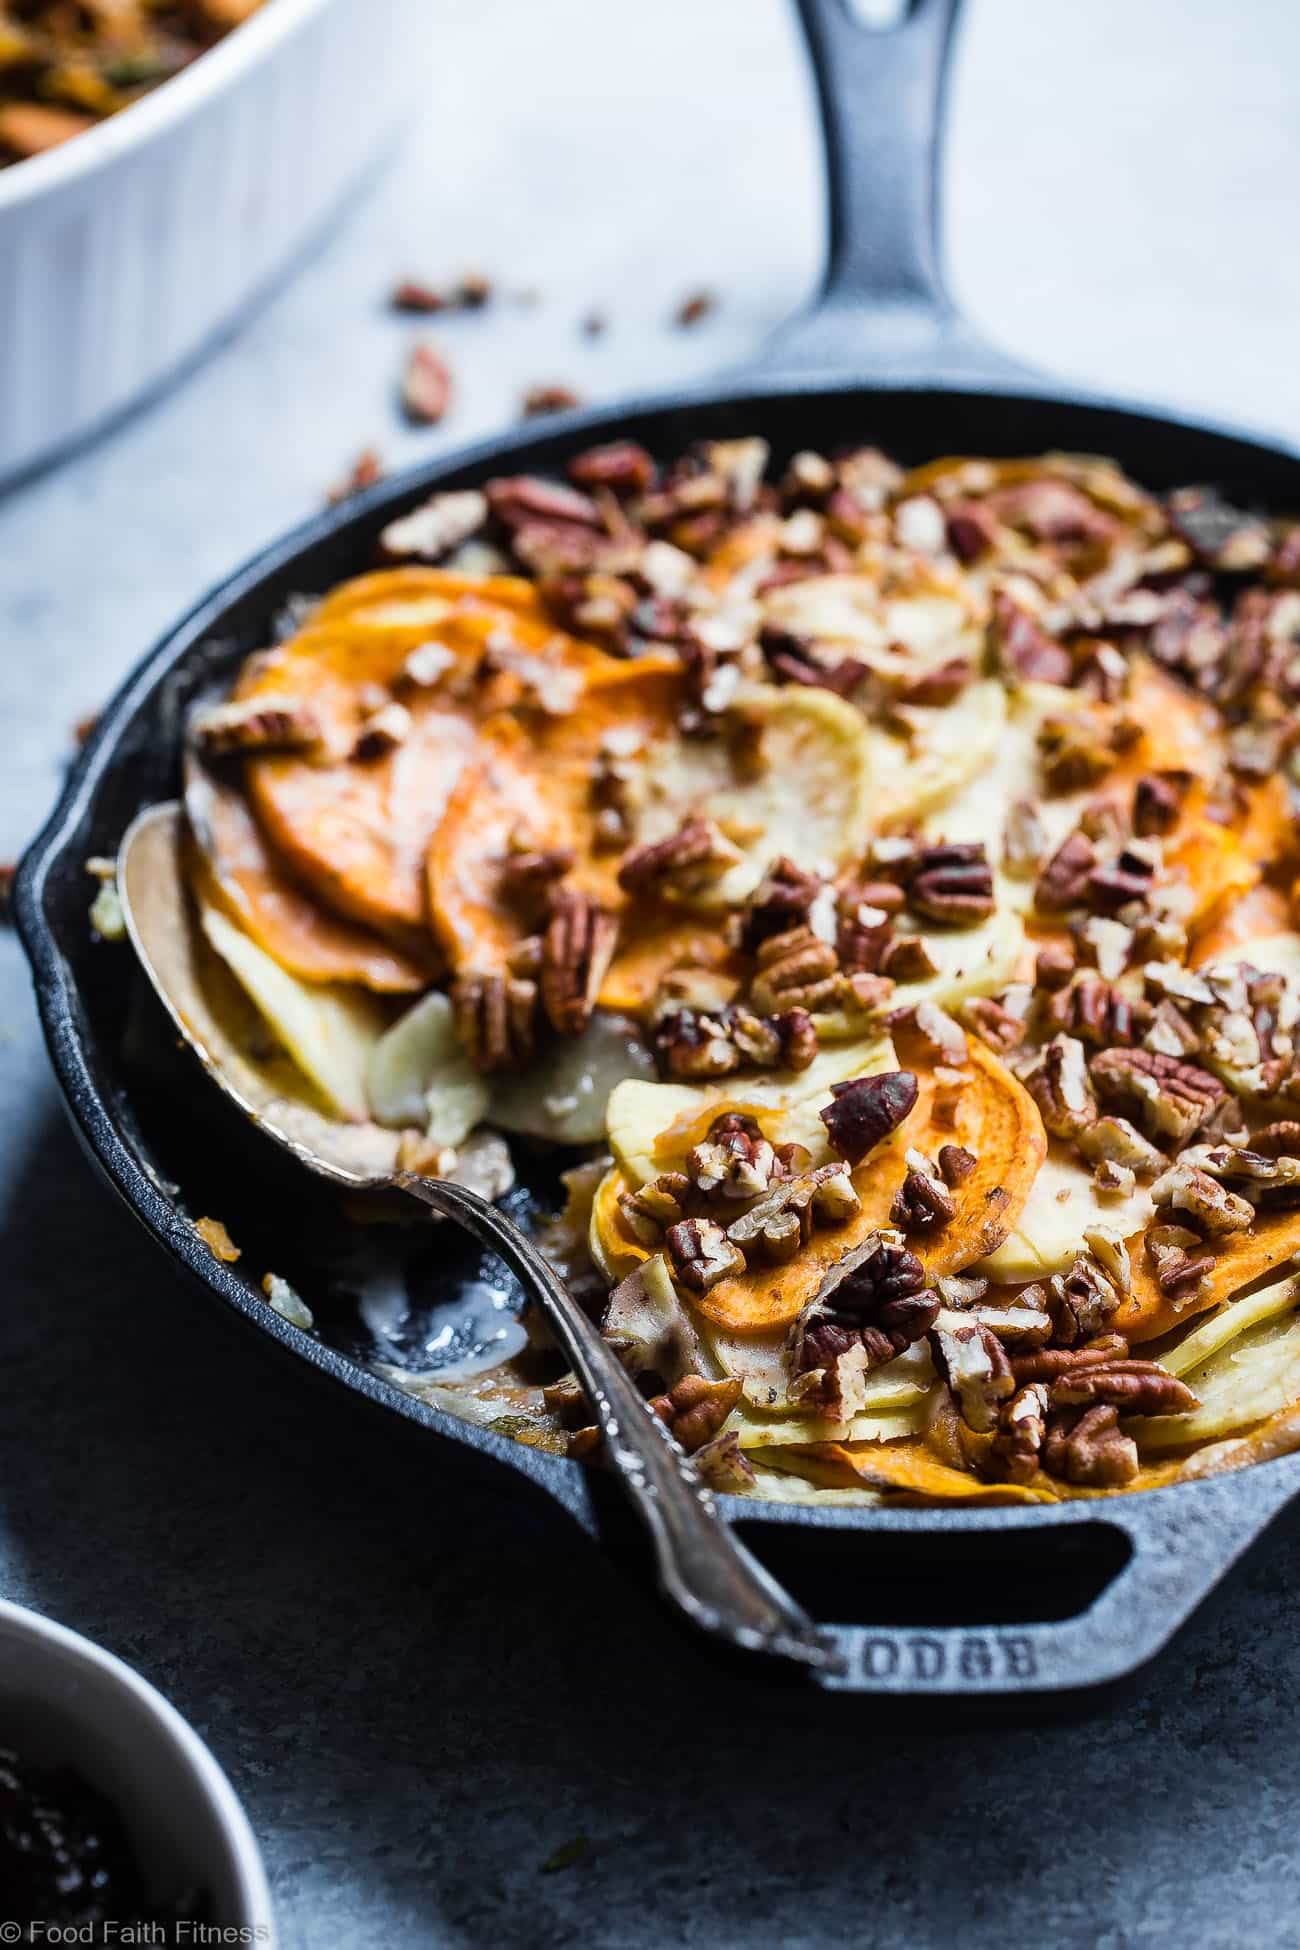 Sweet Potato Scalloped Potatoes Casserole - So rich and creamy, you will never believe it's gluten free and paleo/vegan/whole30 compliant! Perfect for a healthy Thanksgiving! | Foodfaithfitness.com | @FoodFaithFit